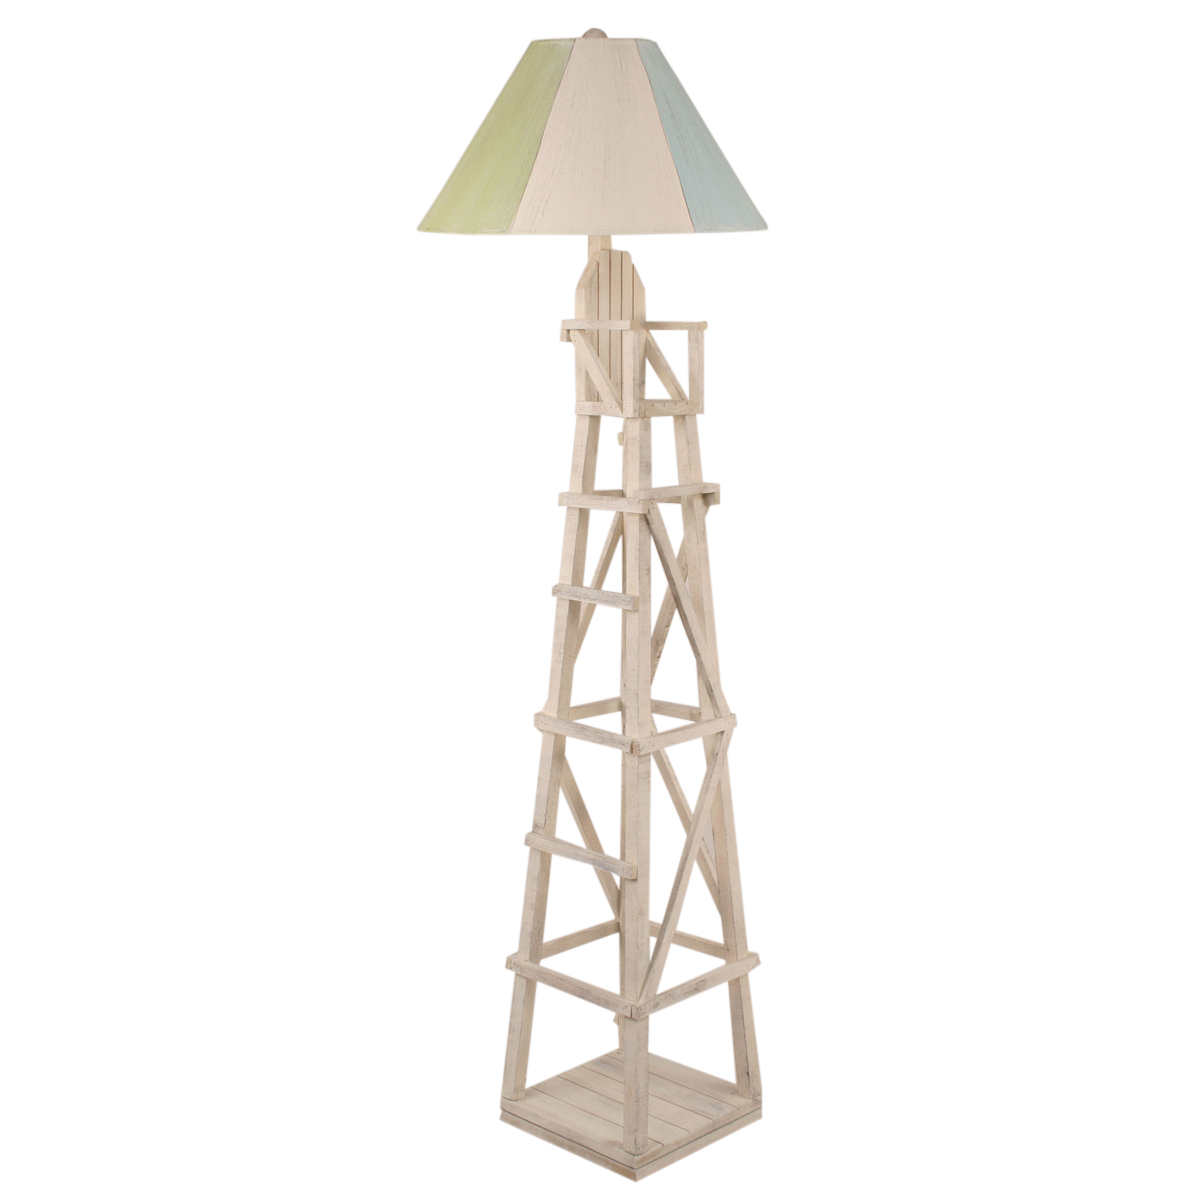 Cottage Liuard Chair Floor Lamp With